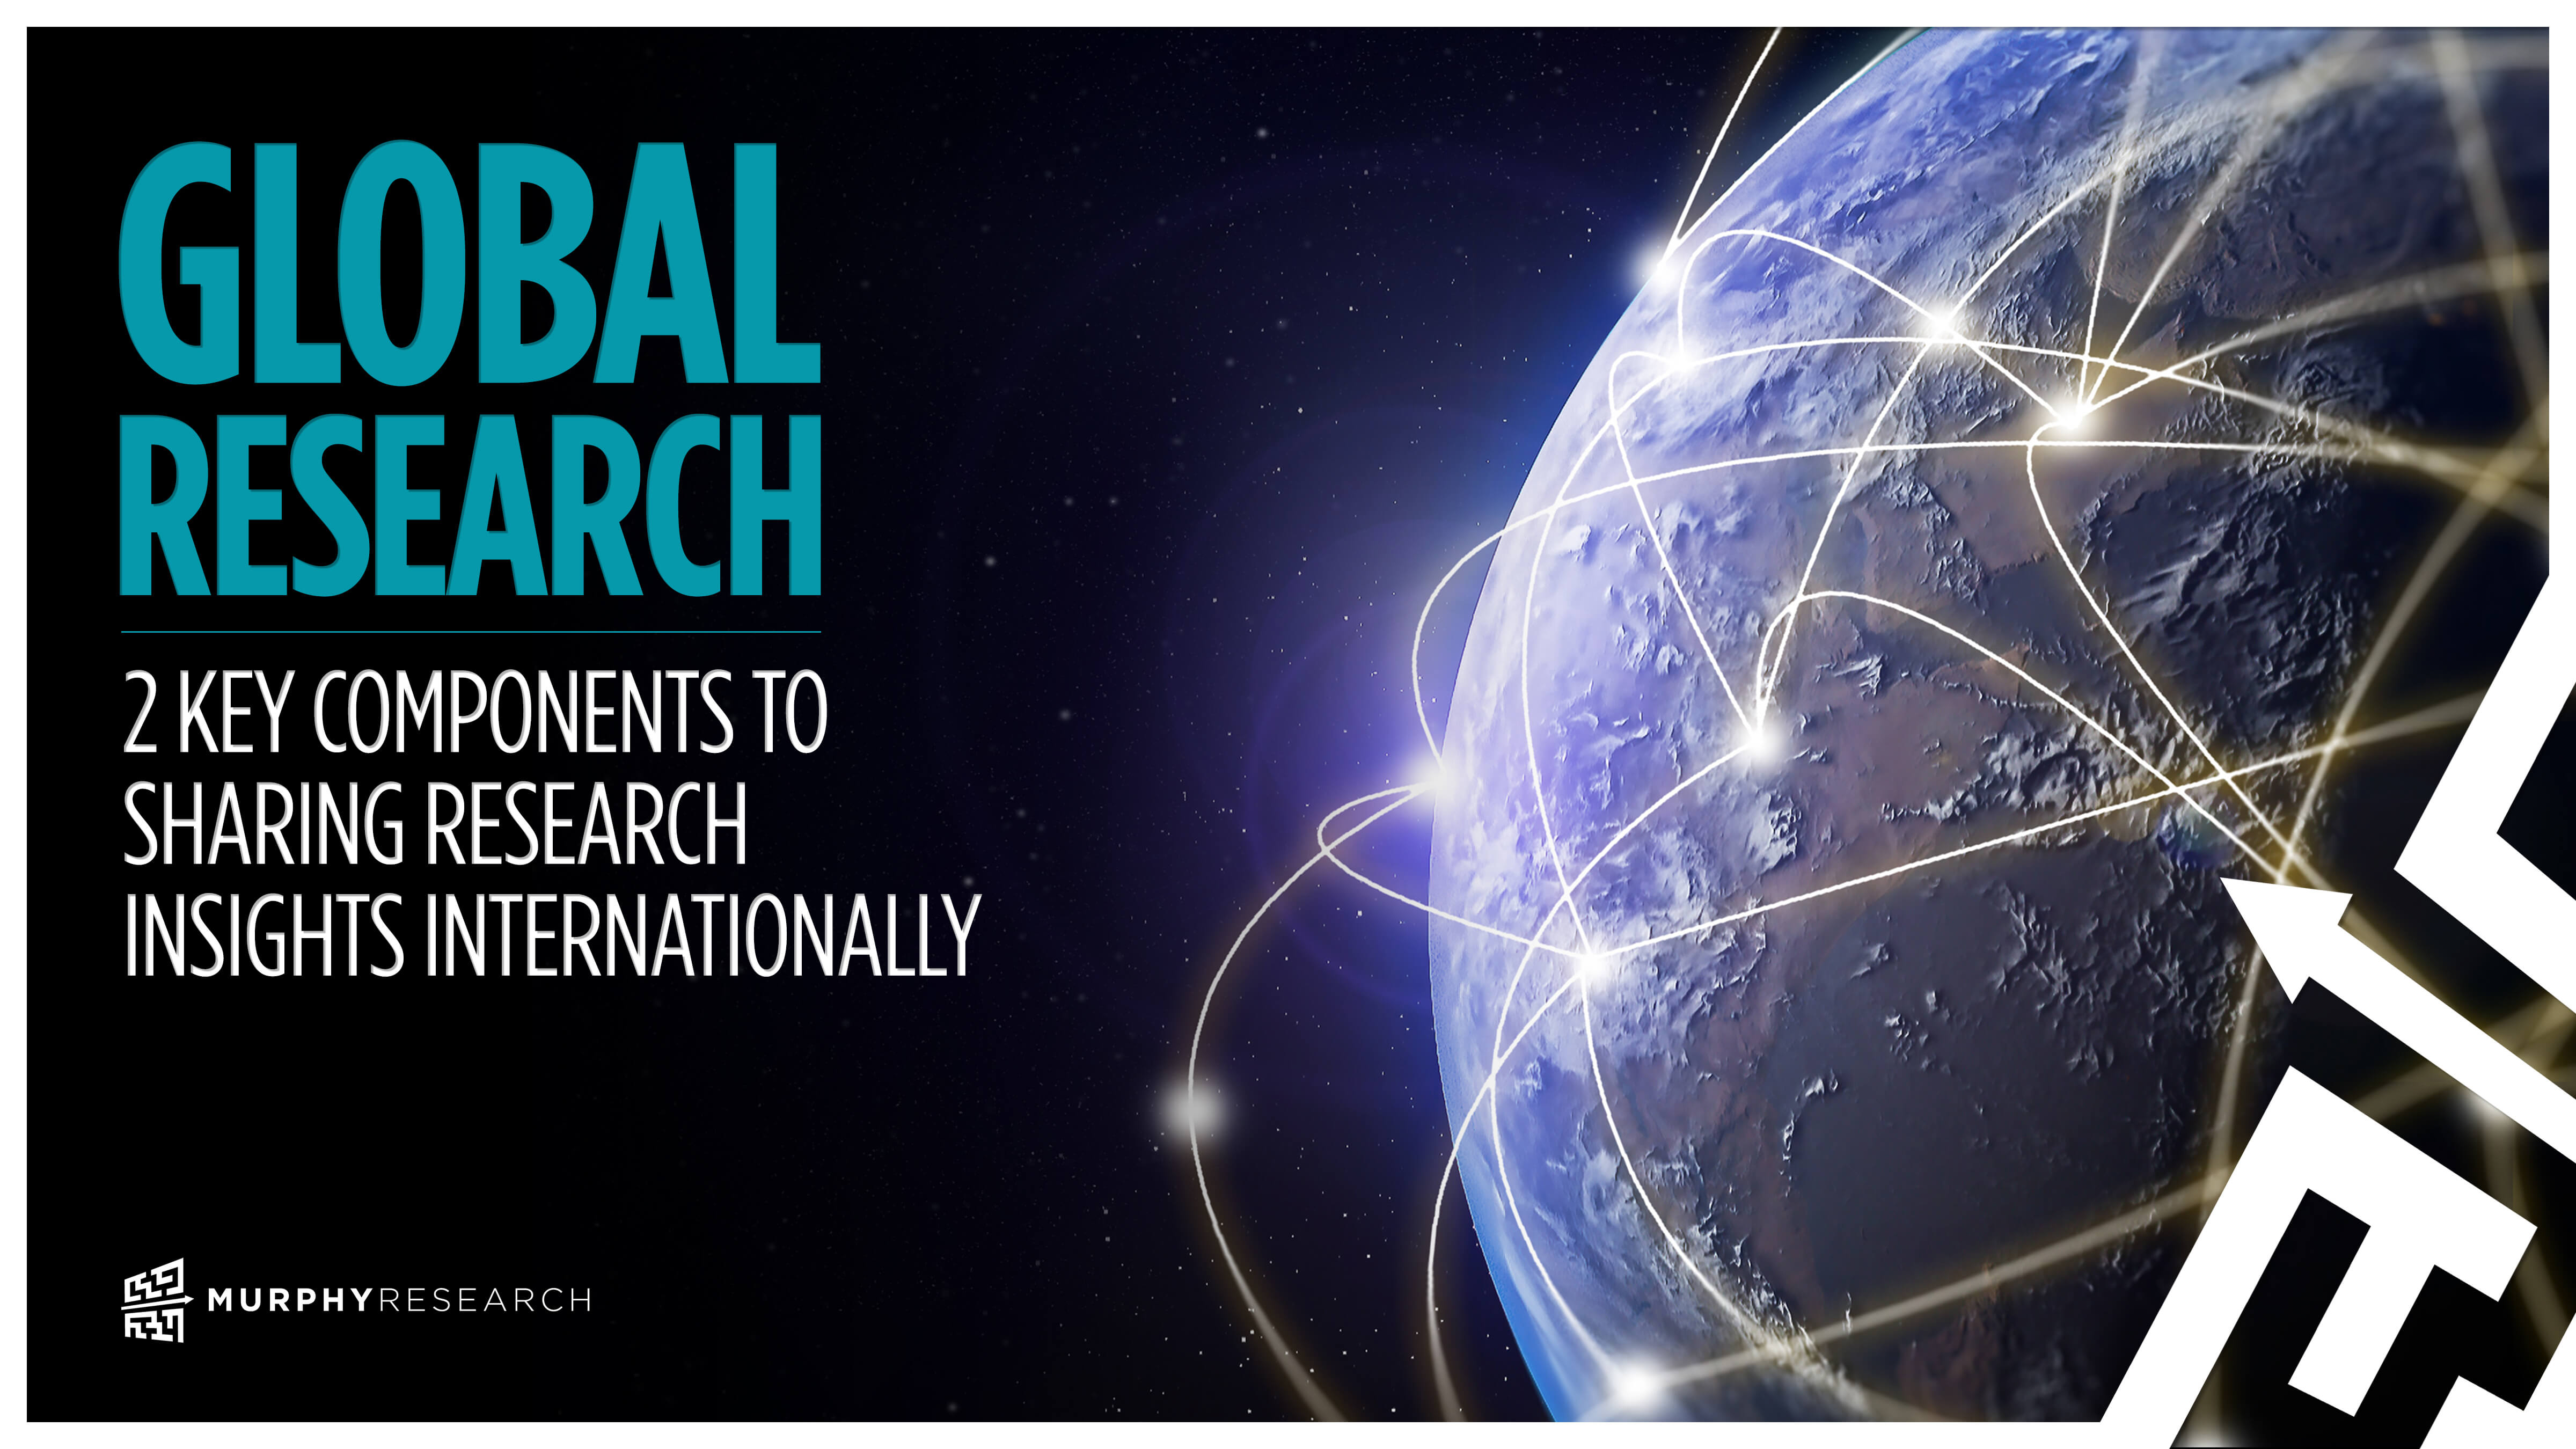 2 Key Components to Sharing Research Insights Internationally